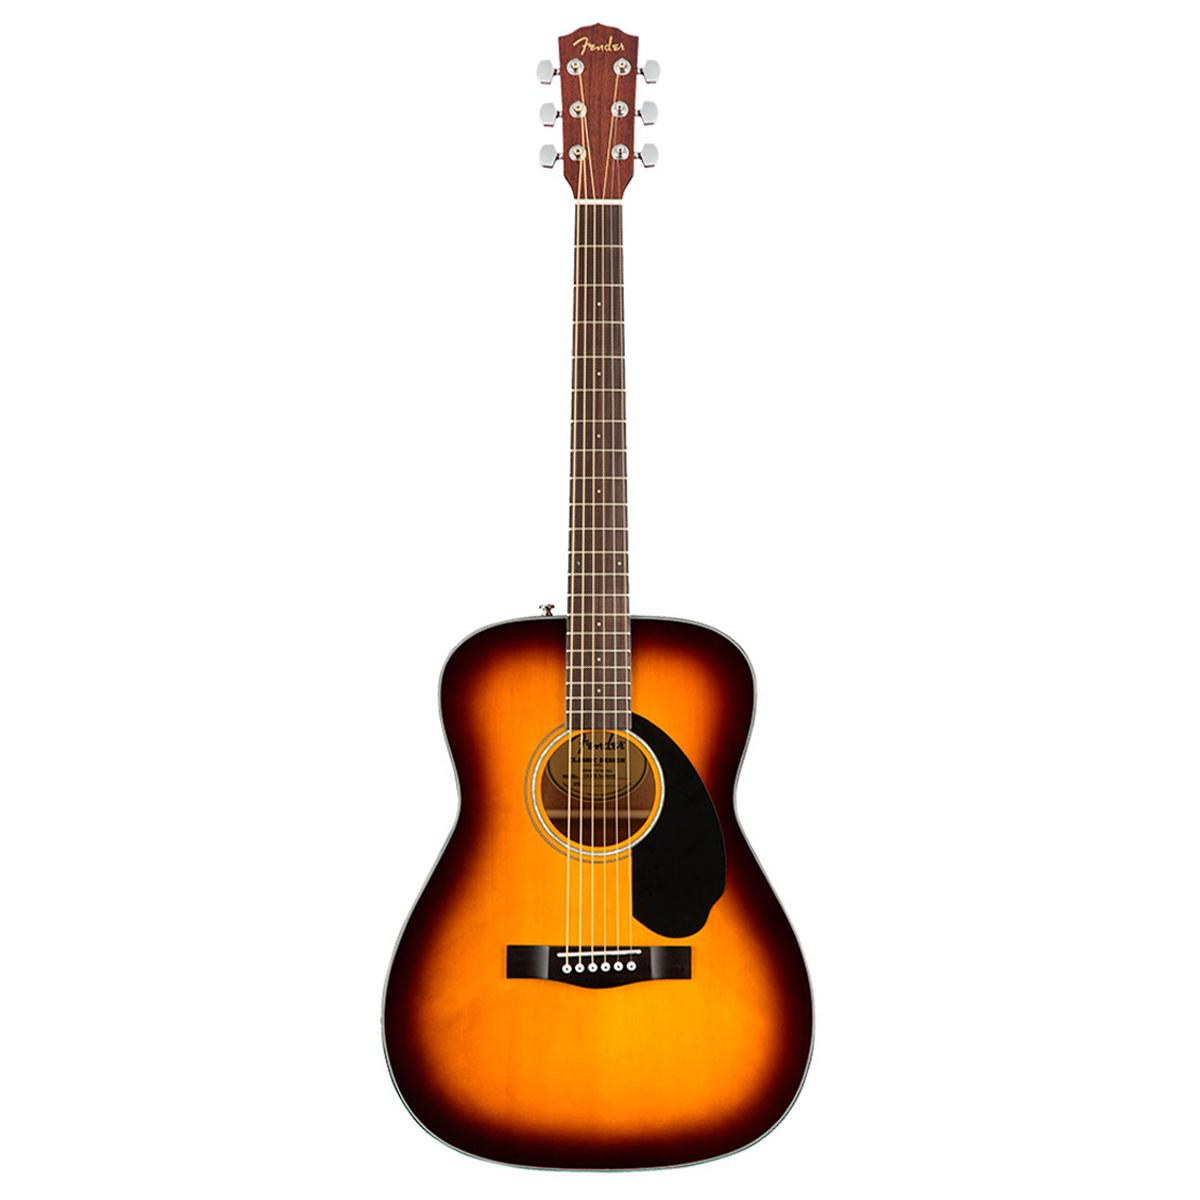 Fender - Guitare Folk CC-60S concert sunburst WN